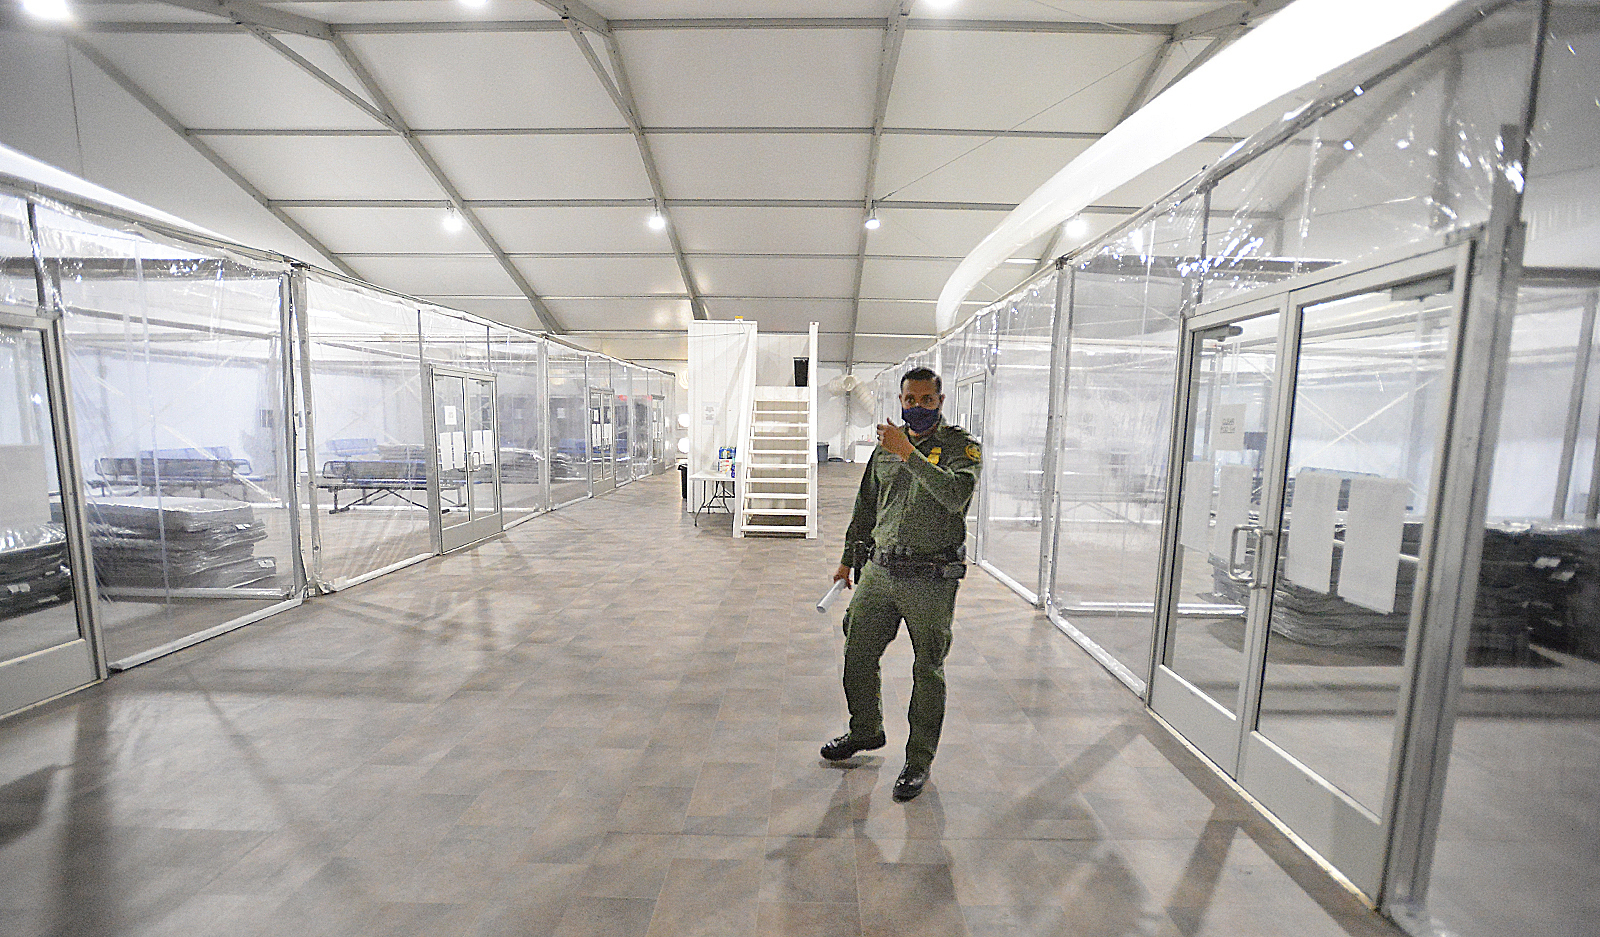 U.S. Border Patrol Agent Fidel Cabrera leads a tour of one of four living areas inside a processing facility in Yuma during an open house on April 20, 2021. (Randy Hoeft / The Yuma Sun via Associated Press)